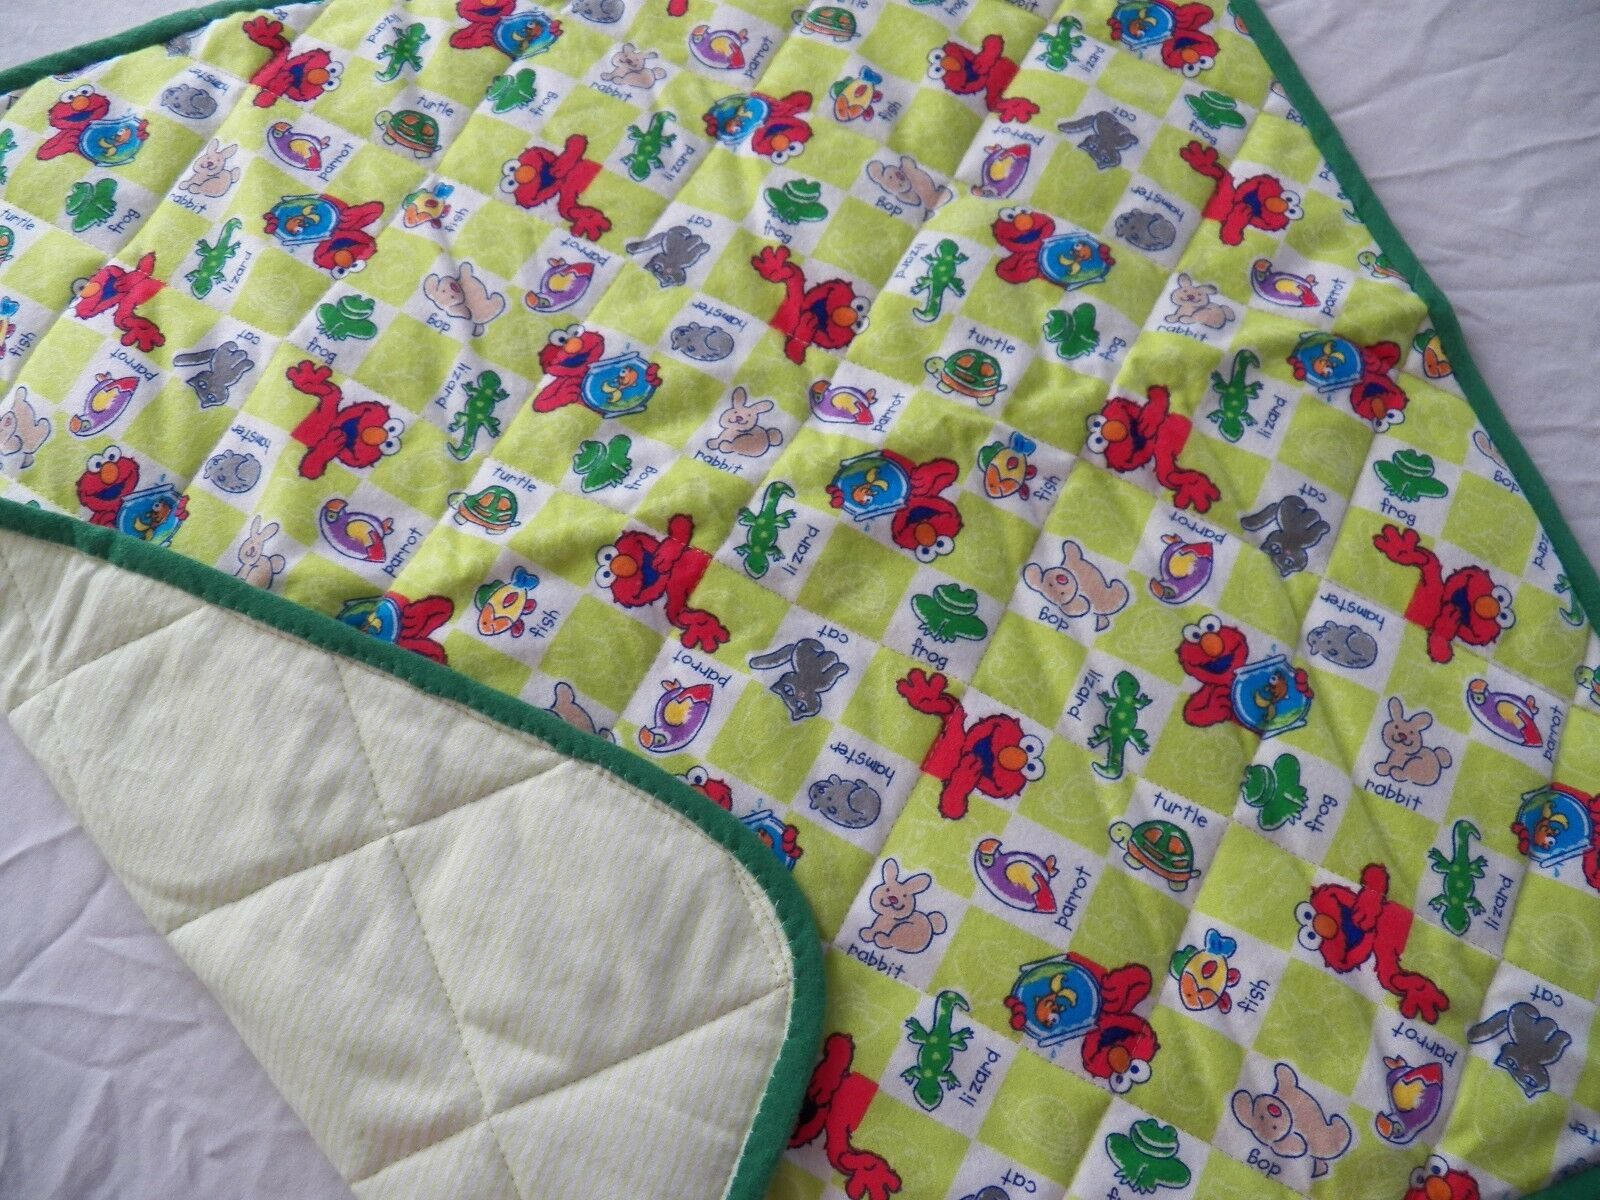 BABY CHANGING PAD Portable Diaper Travel Mat Cotton Washable Padded Handmade NEW 30